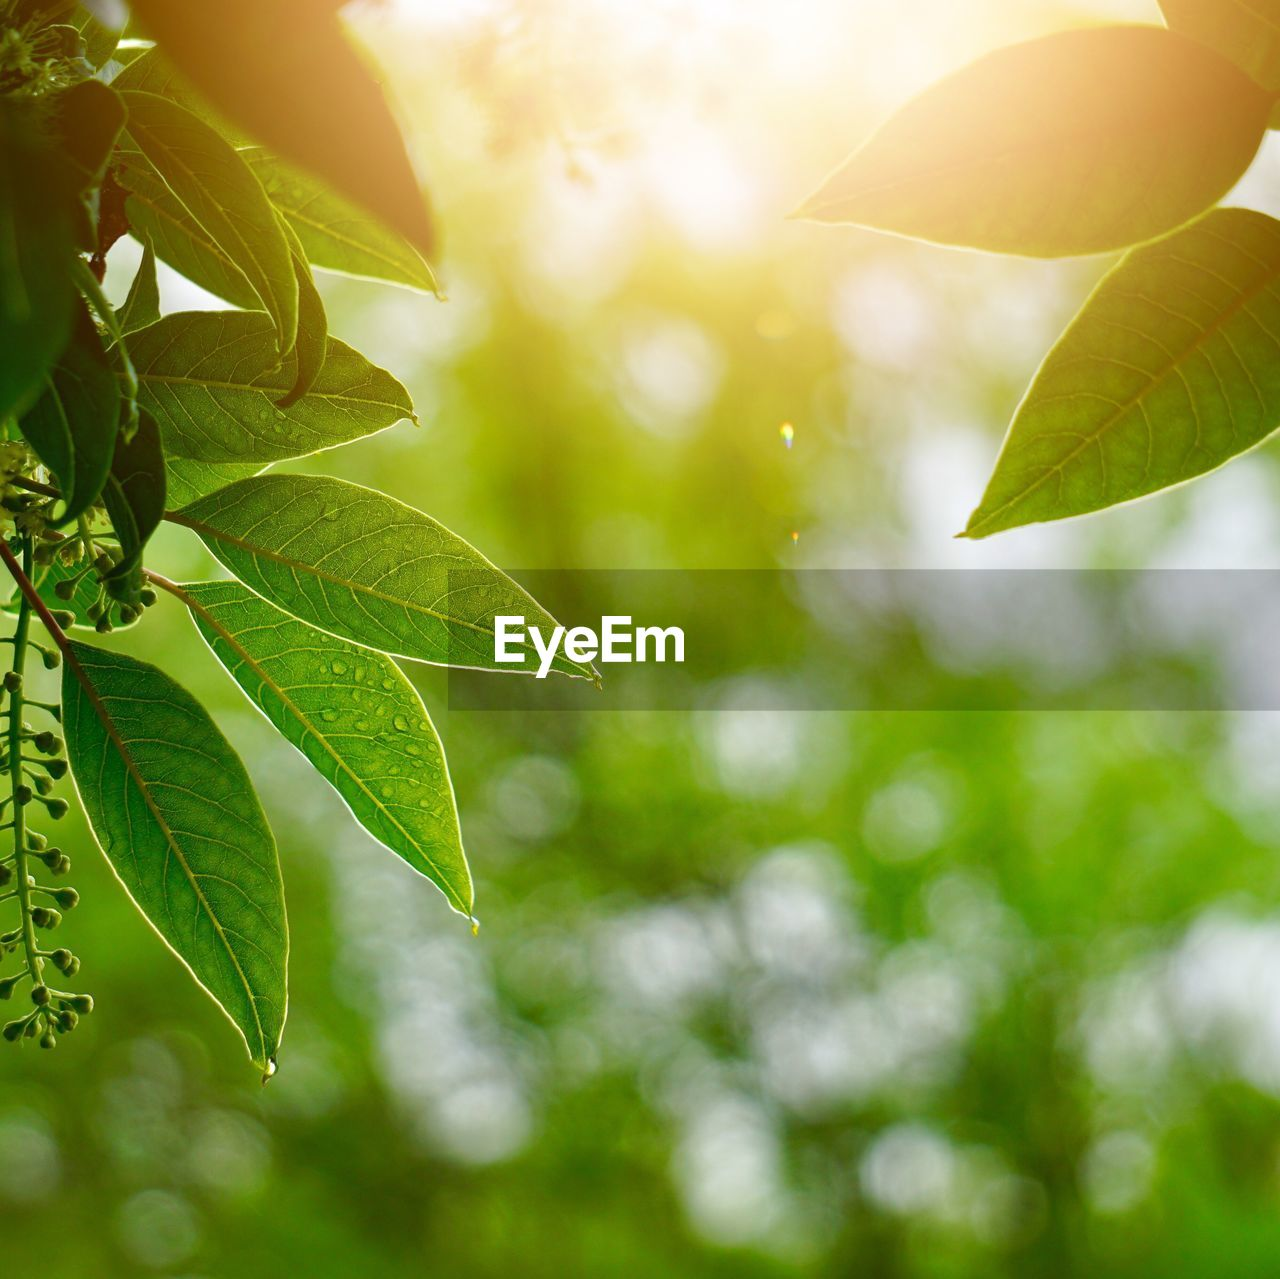 leaf, plant part, plant, growth, green color, nature, close-up, beauty in nature, focus on foreground, sunlight, tree, no people, day, freshness, leaves, outdoors, selective focus, tranquility, branch, lens flare